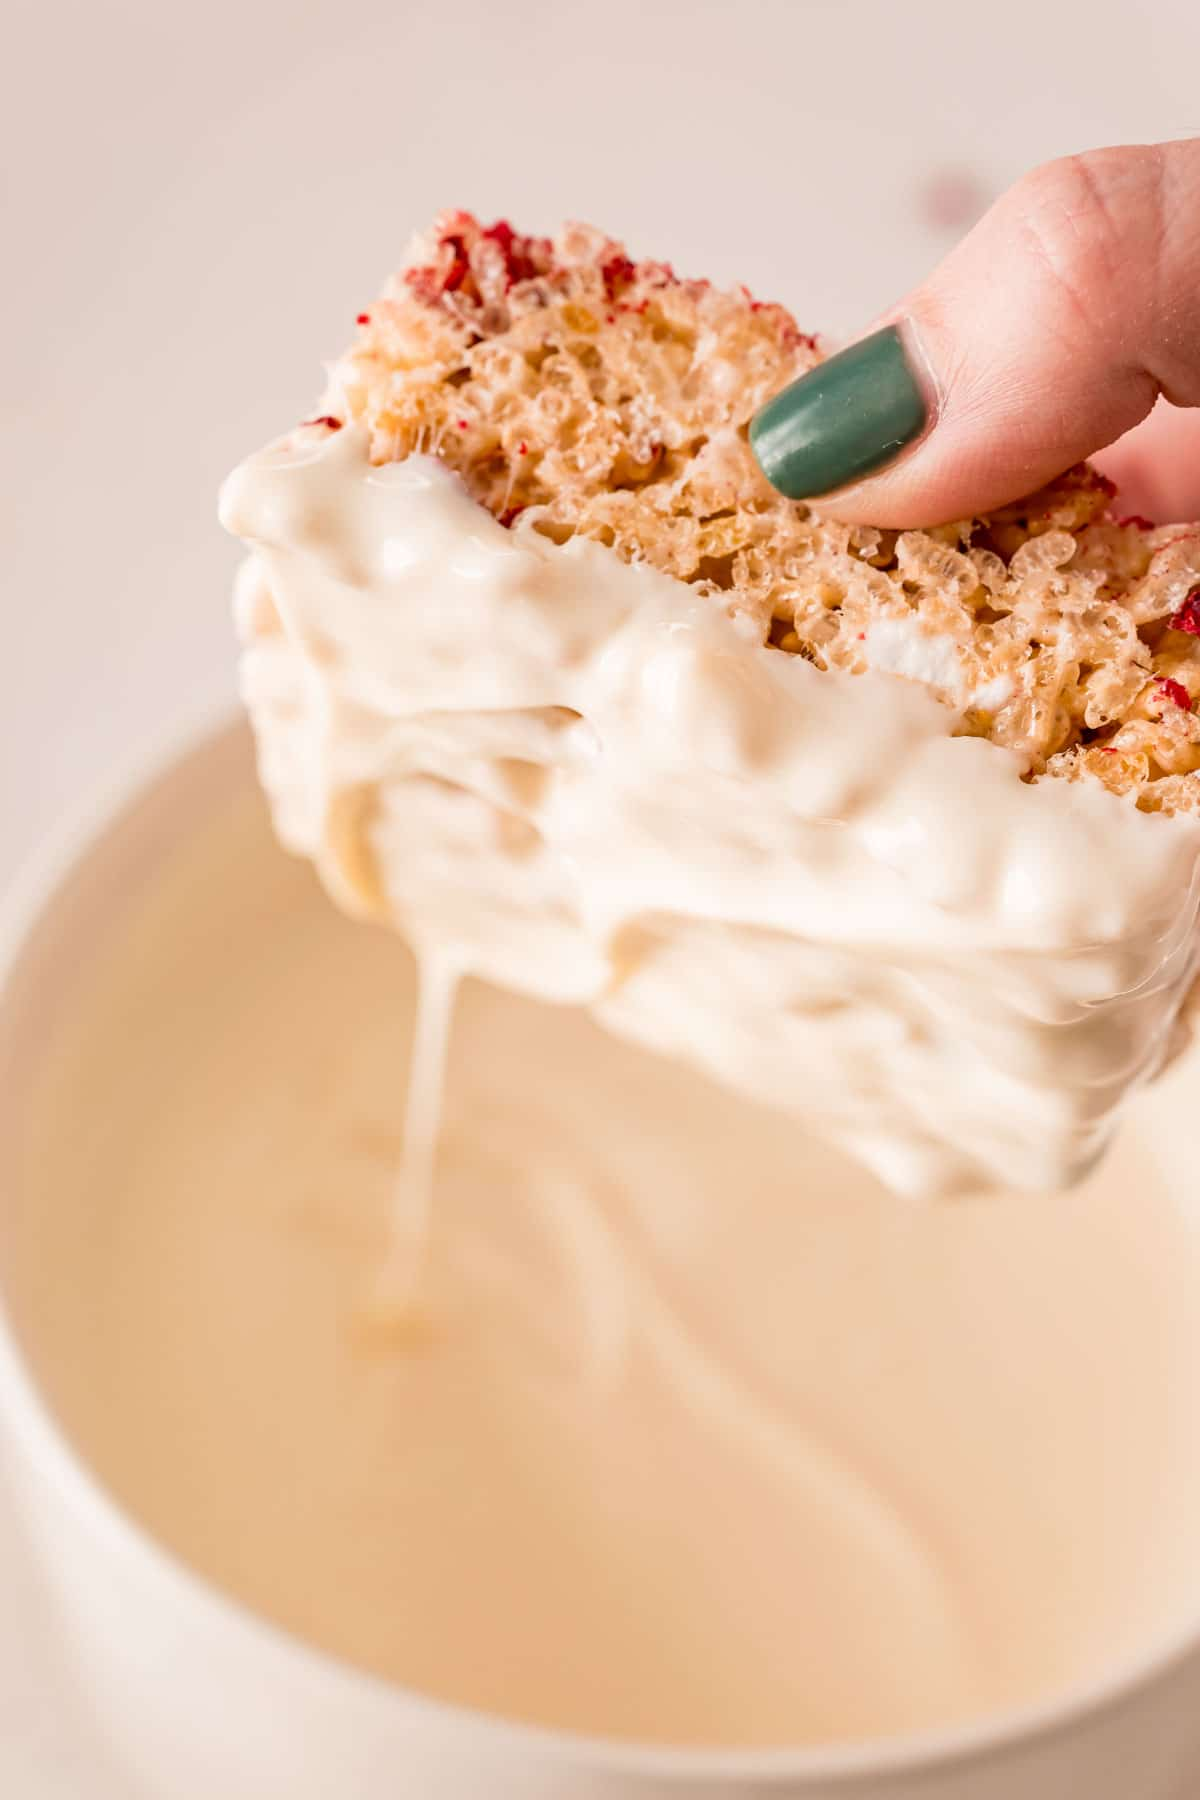 Rice krispie treat being dipped in white chocolate